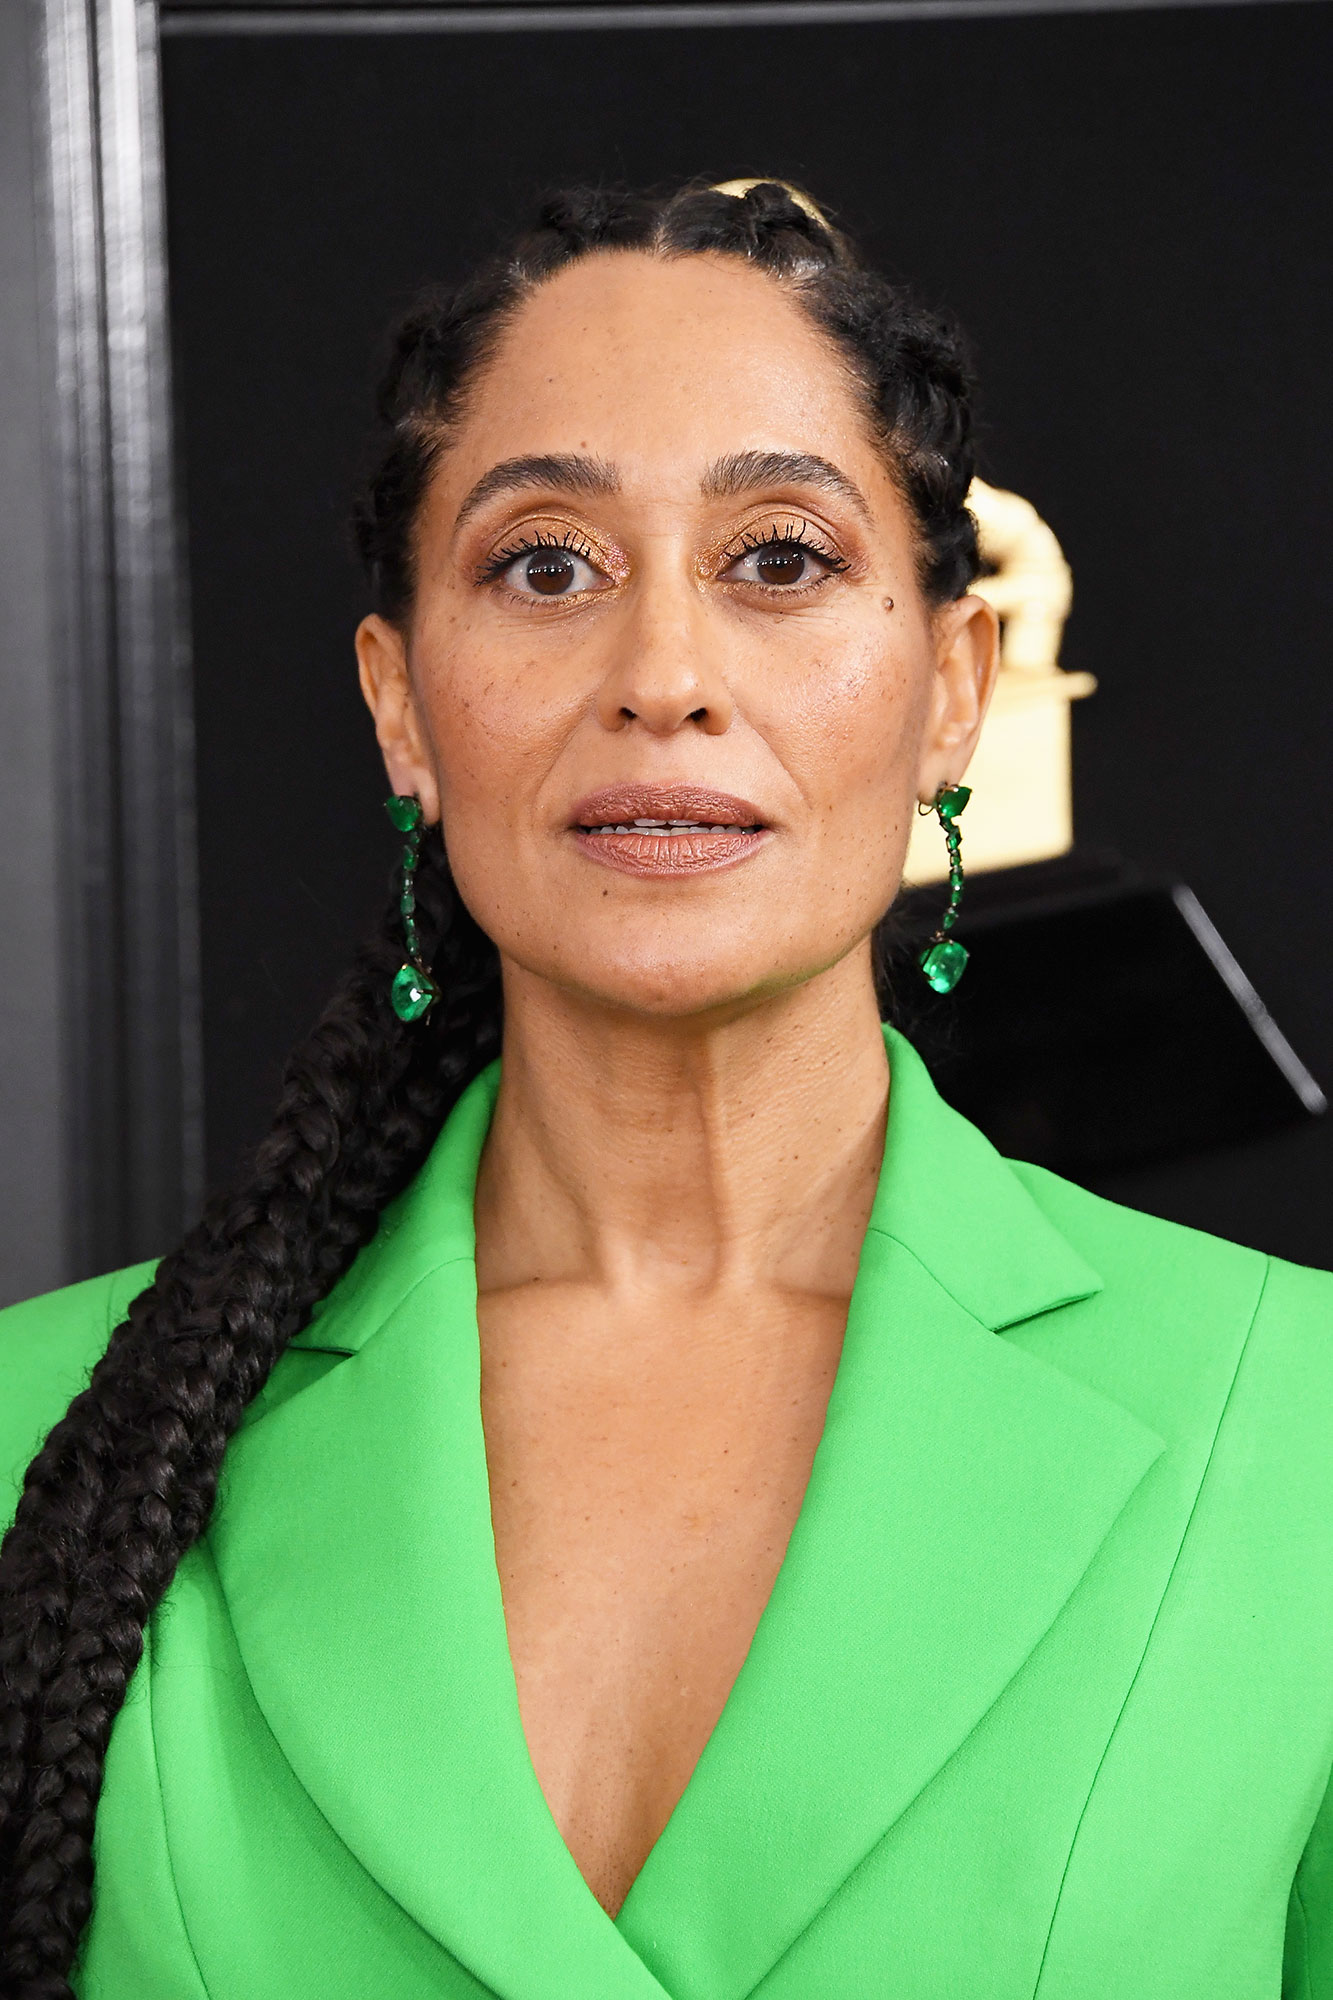 grammys 2019 Tracee Ellis Ross - Keeping everything in the same color family, the Blackish actress wore matching green Lorraine Schwartz earrings.